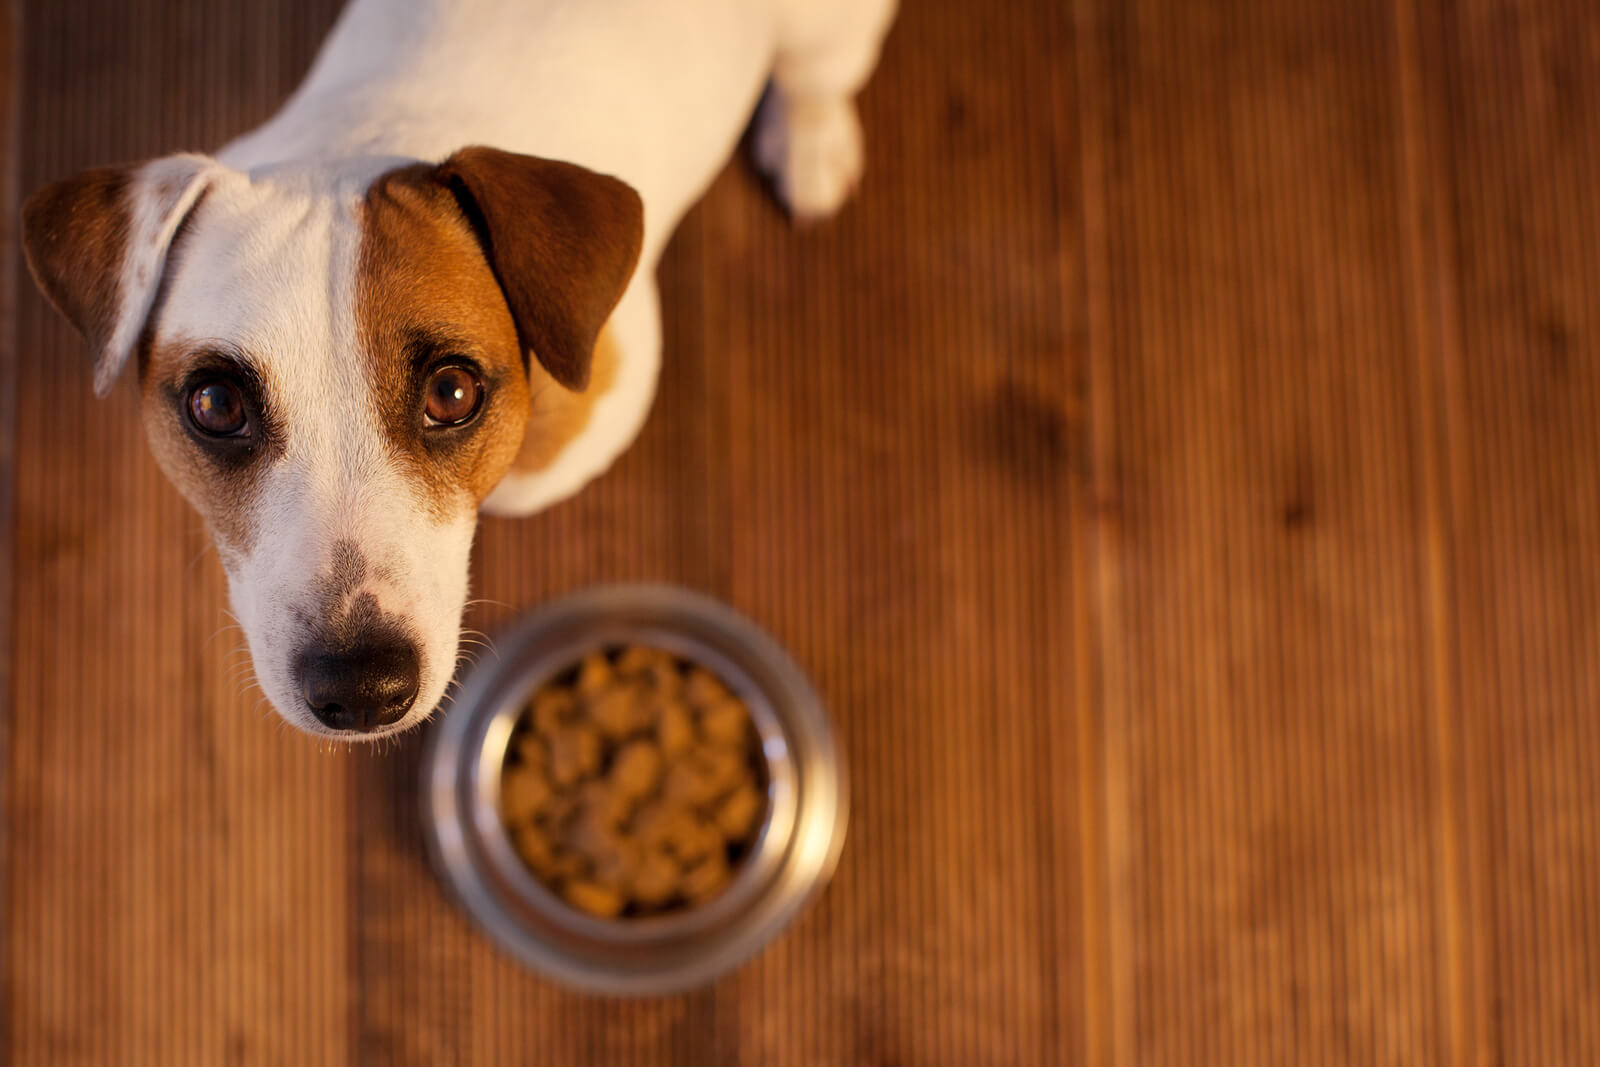 Jack Russell terrier looking up from hardwood floors where dog food bowl is.